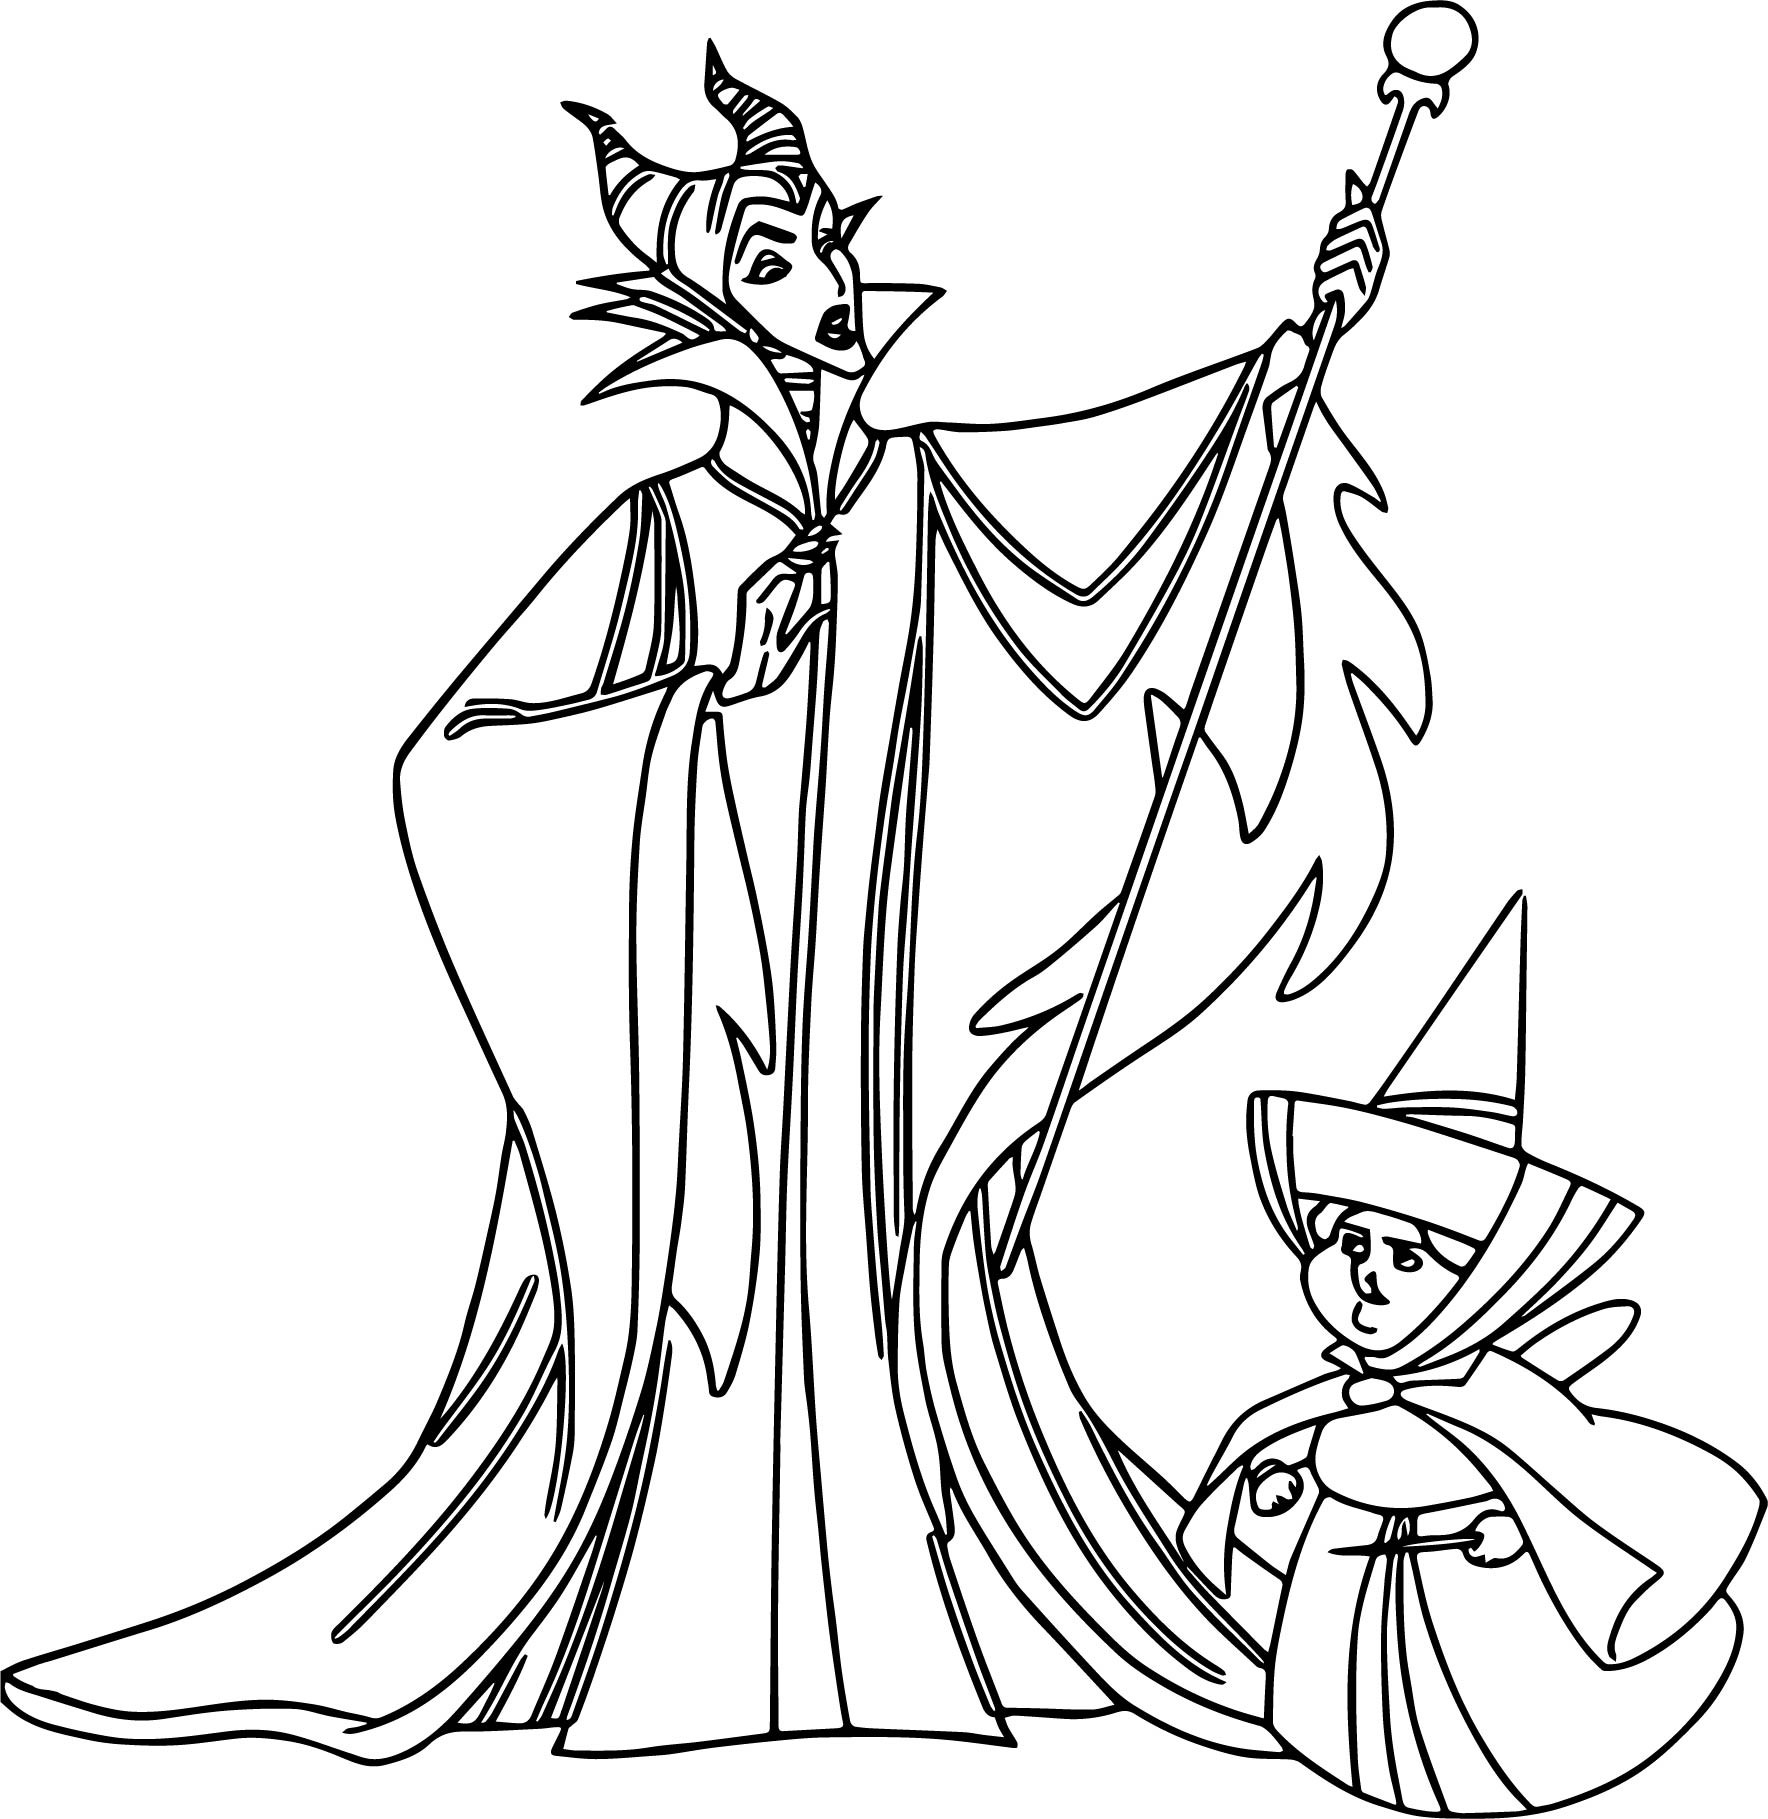 Maleficent Dragon Coloring Pages at GetColorings.com